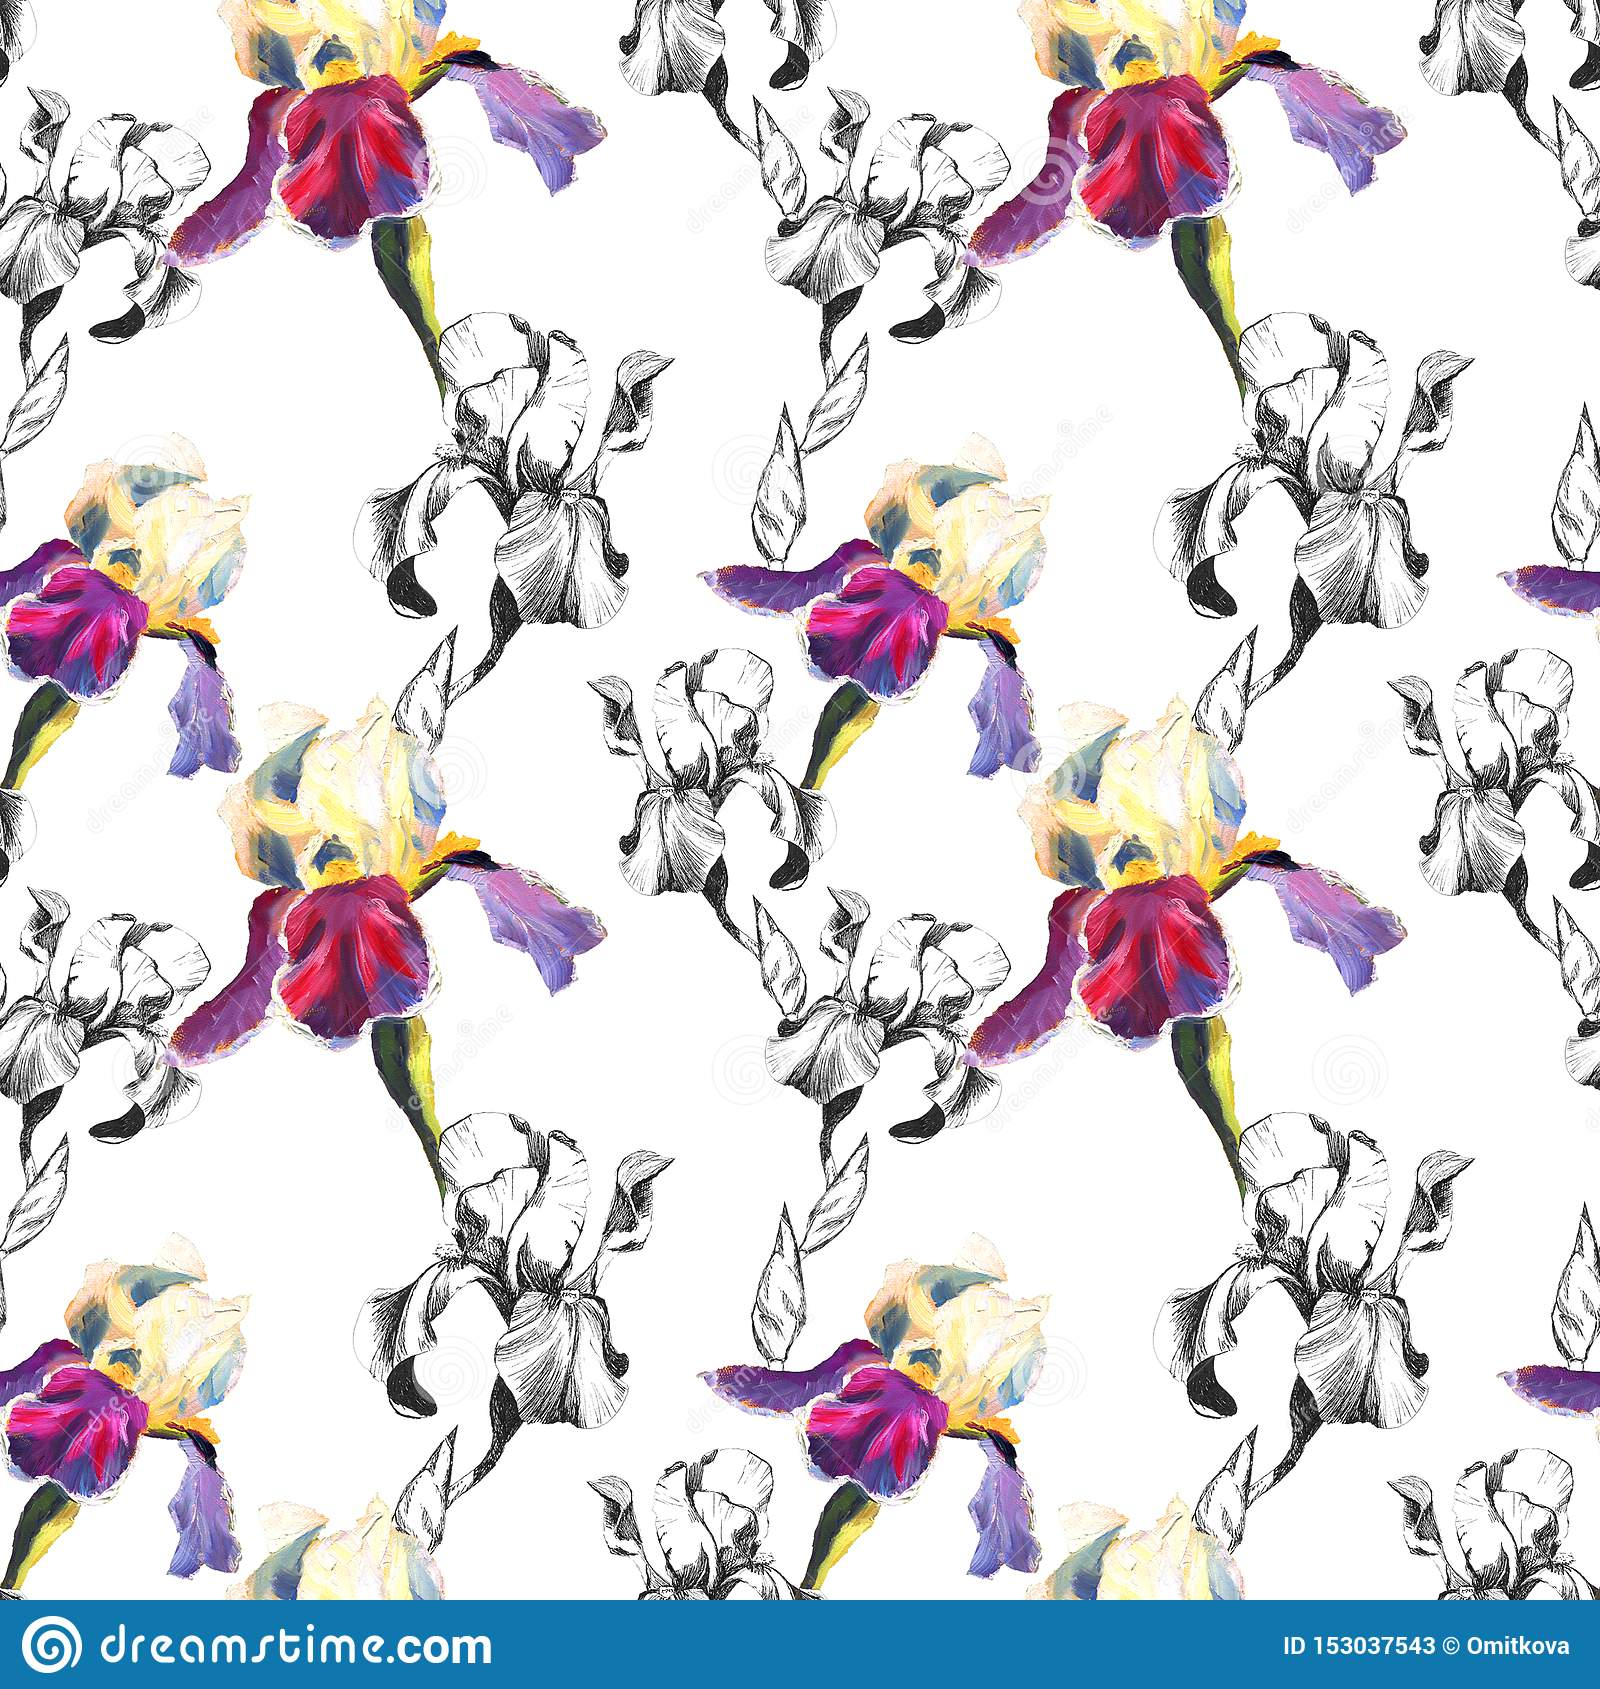 Floral seamless pattern with hand drawn ink and oil iris flowers on white background. Flowers lined up in harmonious